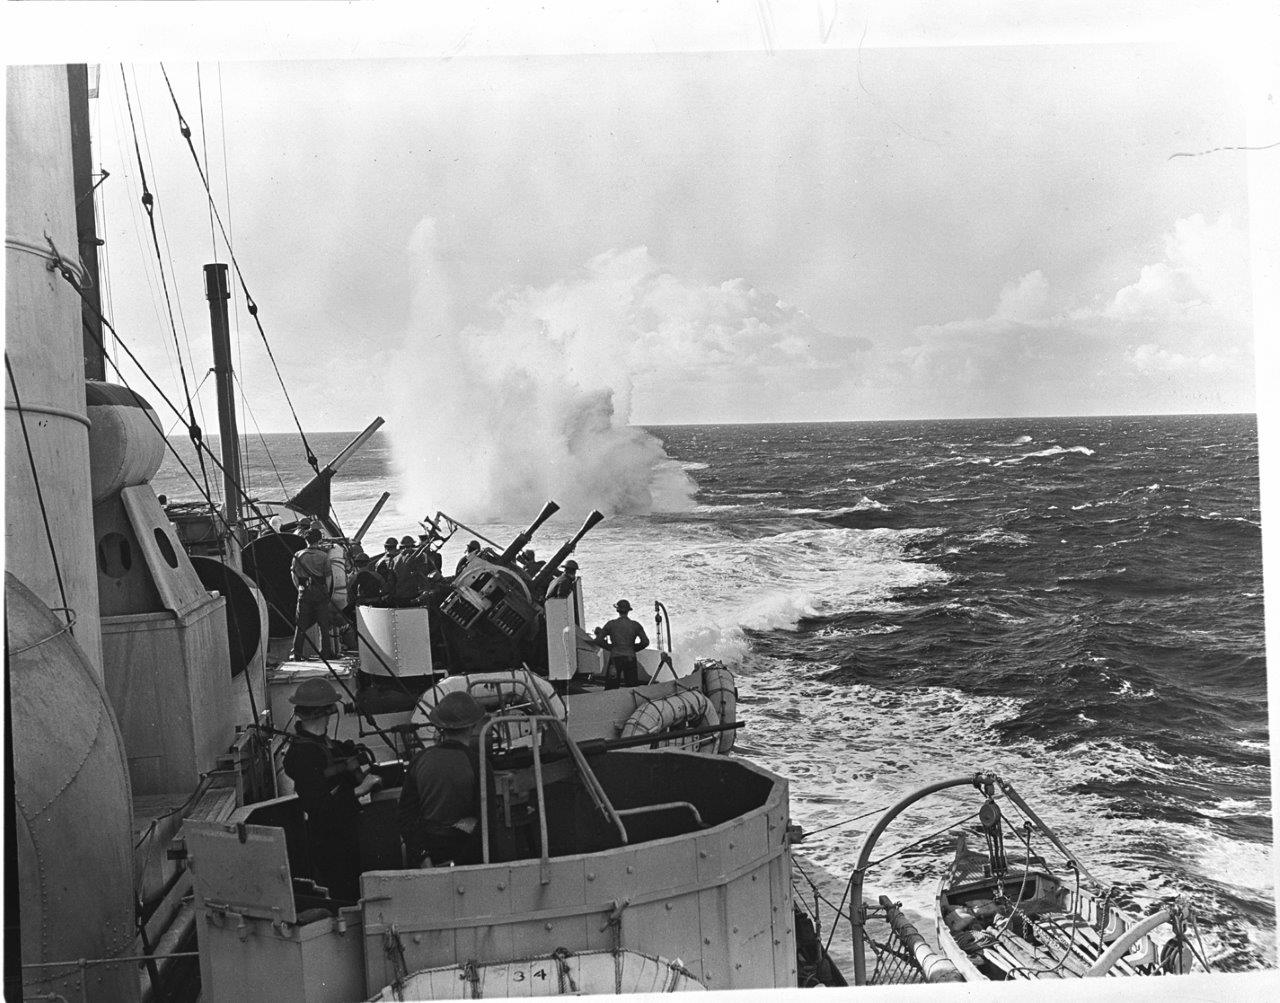 A depth charge dropped from HMCS Prince Robert explodes astern of the ship while on patrol in the Mediterranean on October 2, 1943.